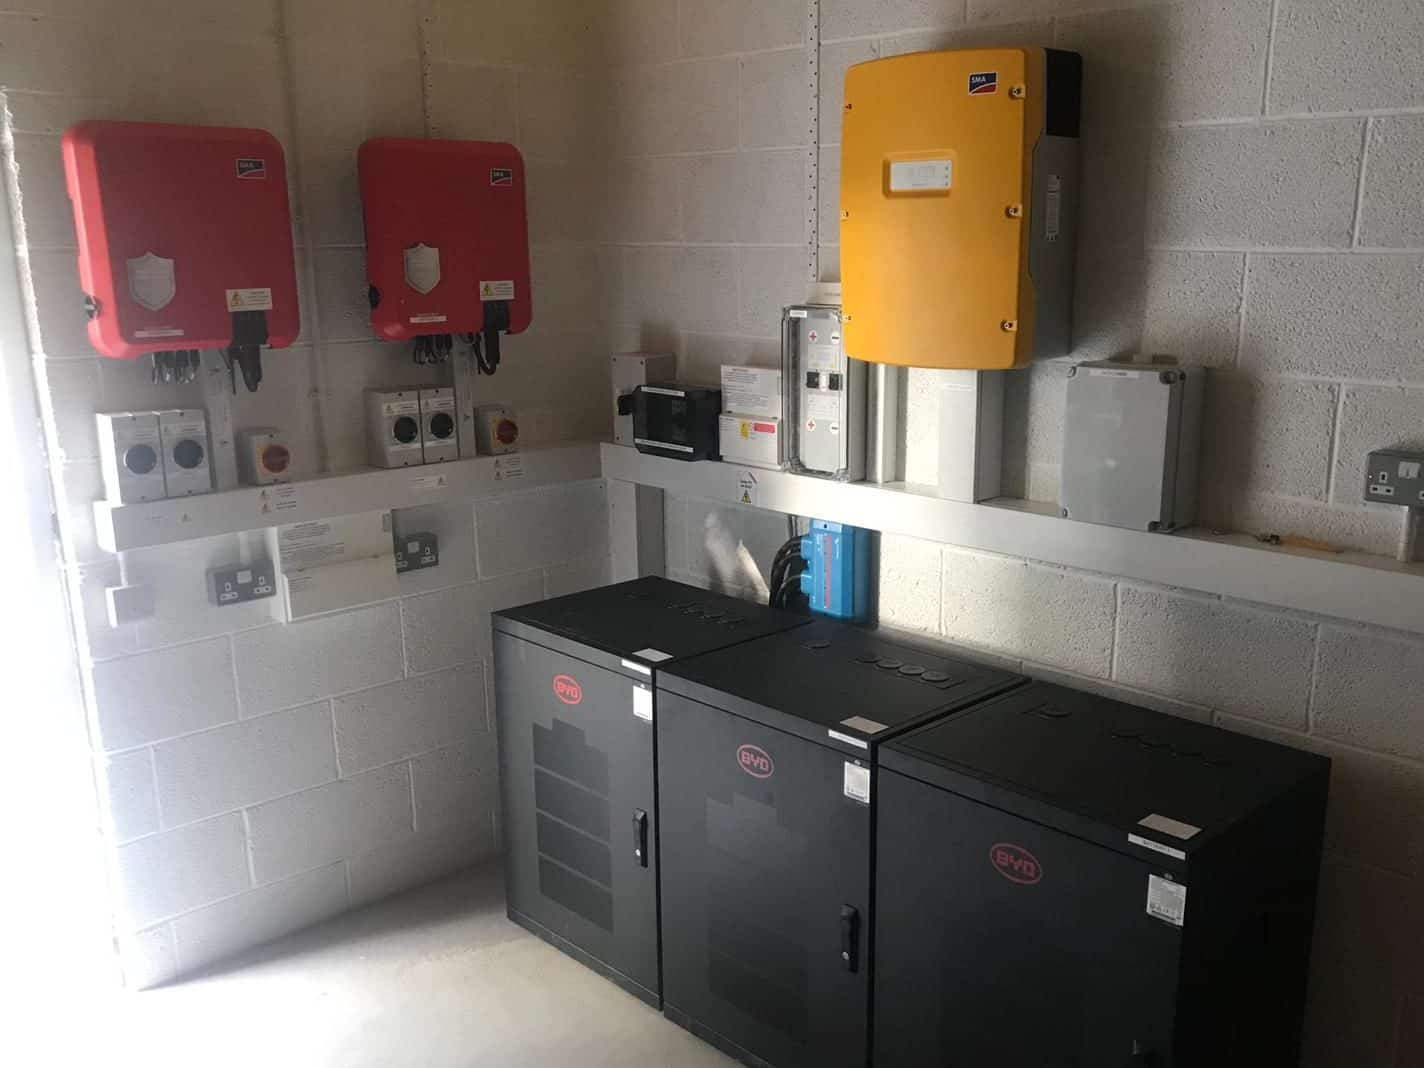 Energy storage / home battery